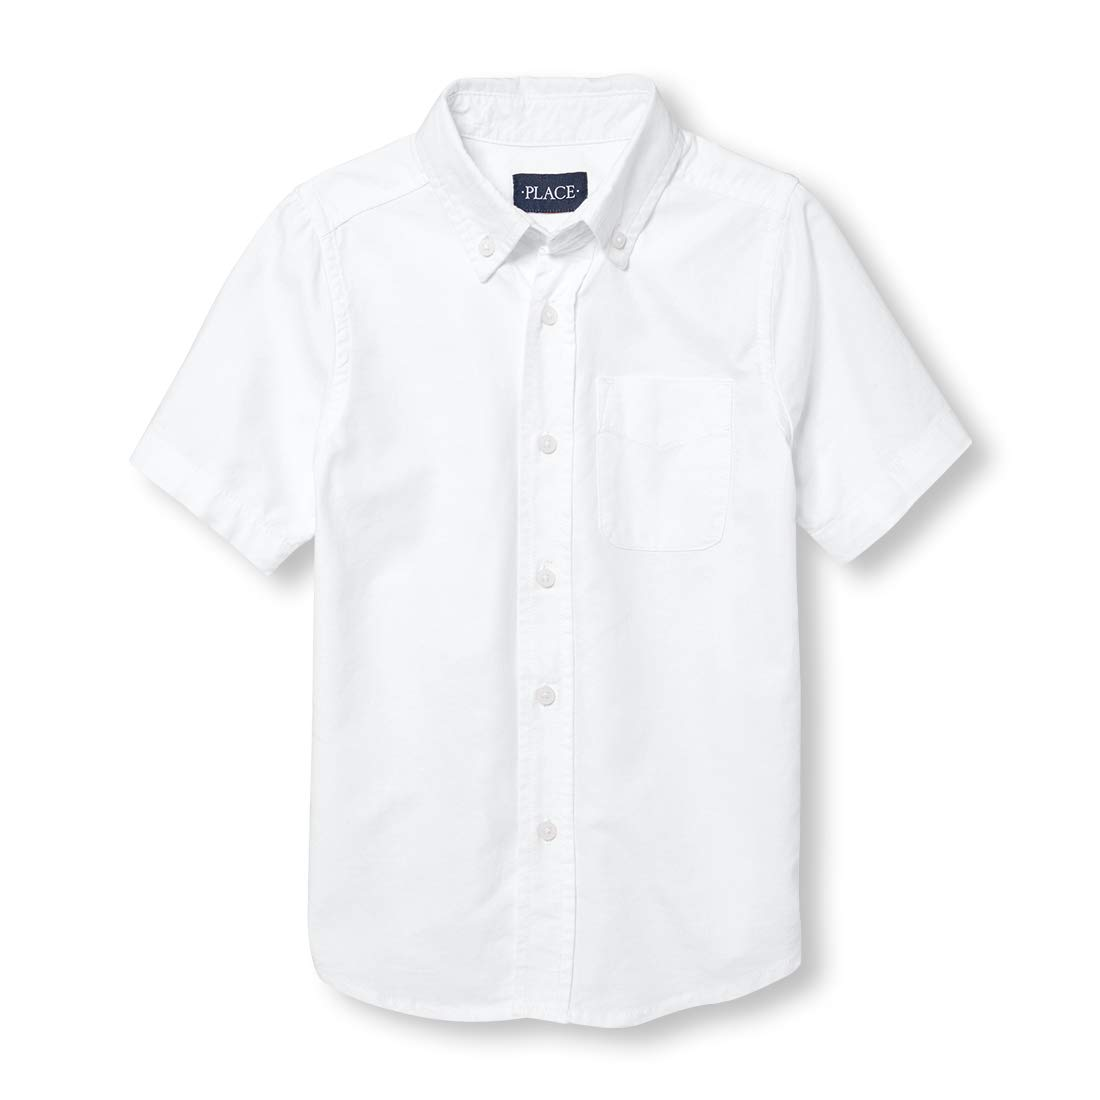 The Children's Place Boys' Little Short Sleeve Uniform Oxford Shirt, White 4765, Small/5/6 by The Children's Place